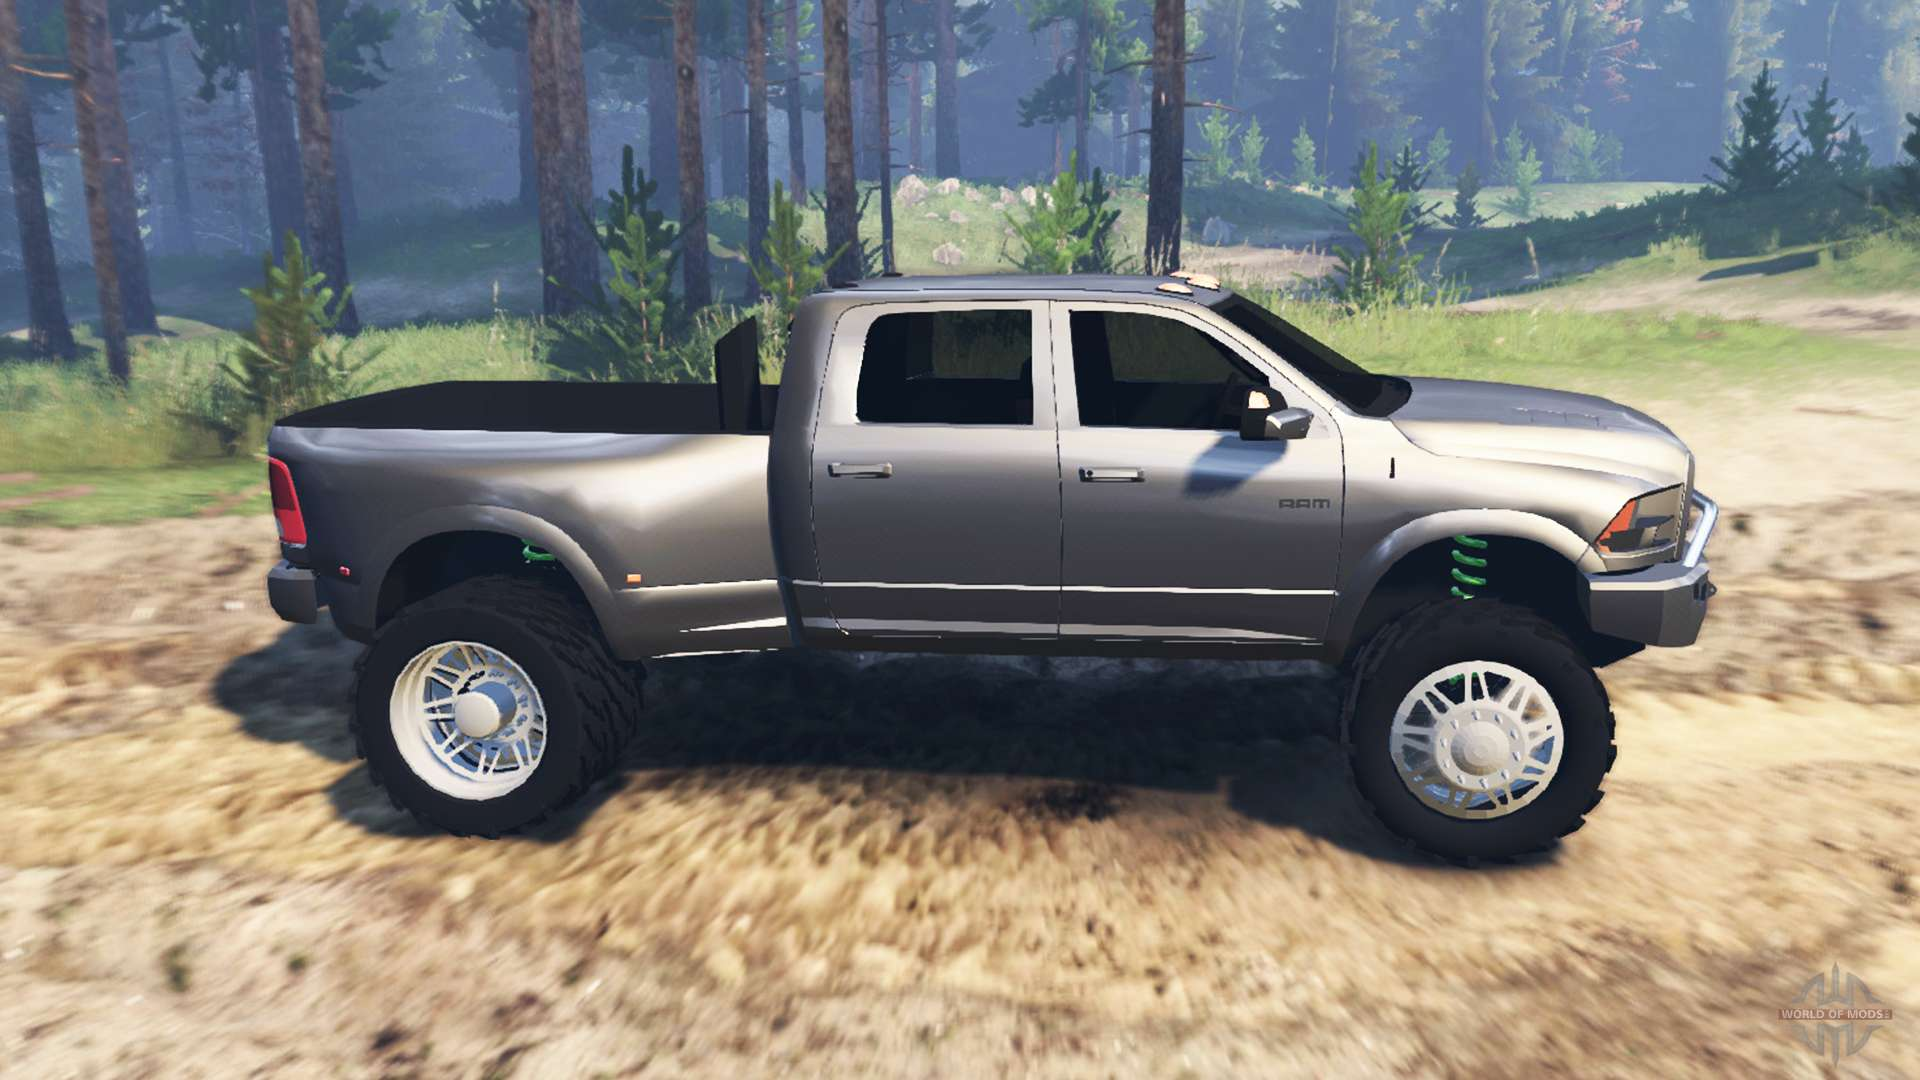 Spintires on 01 Dodge Ram 3500